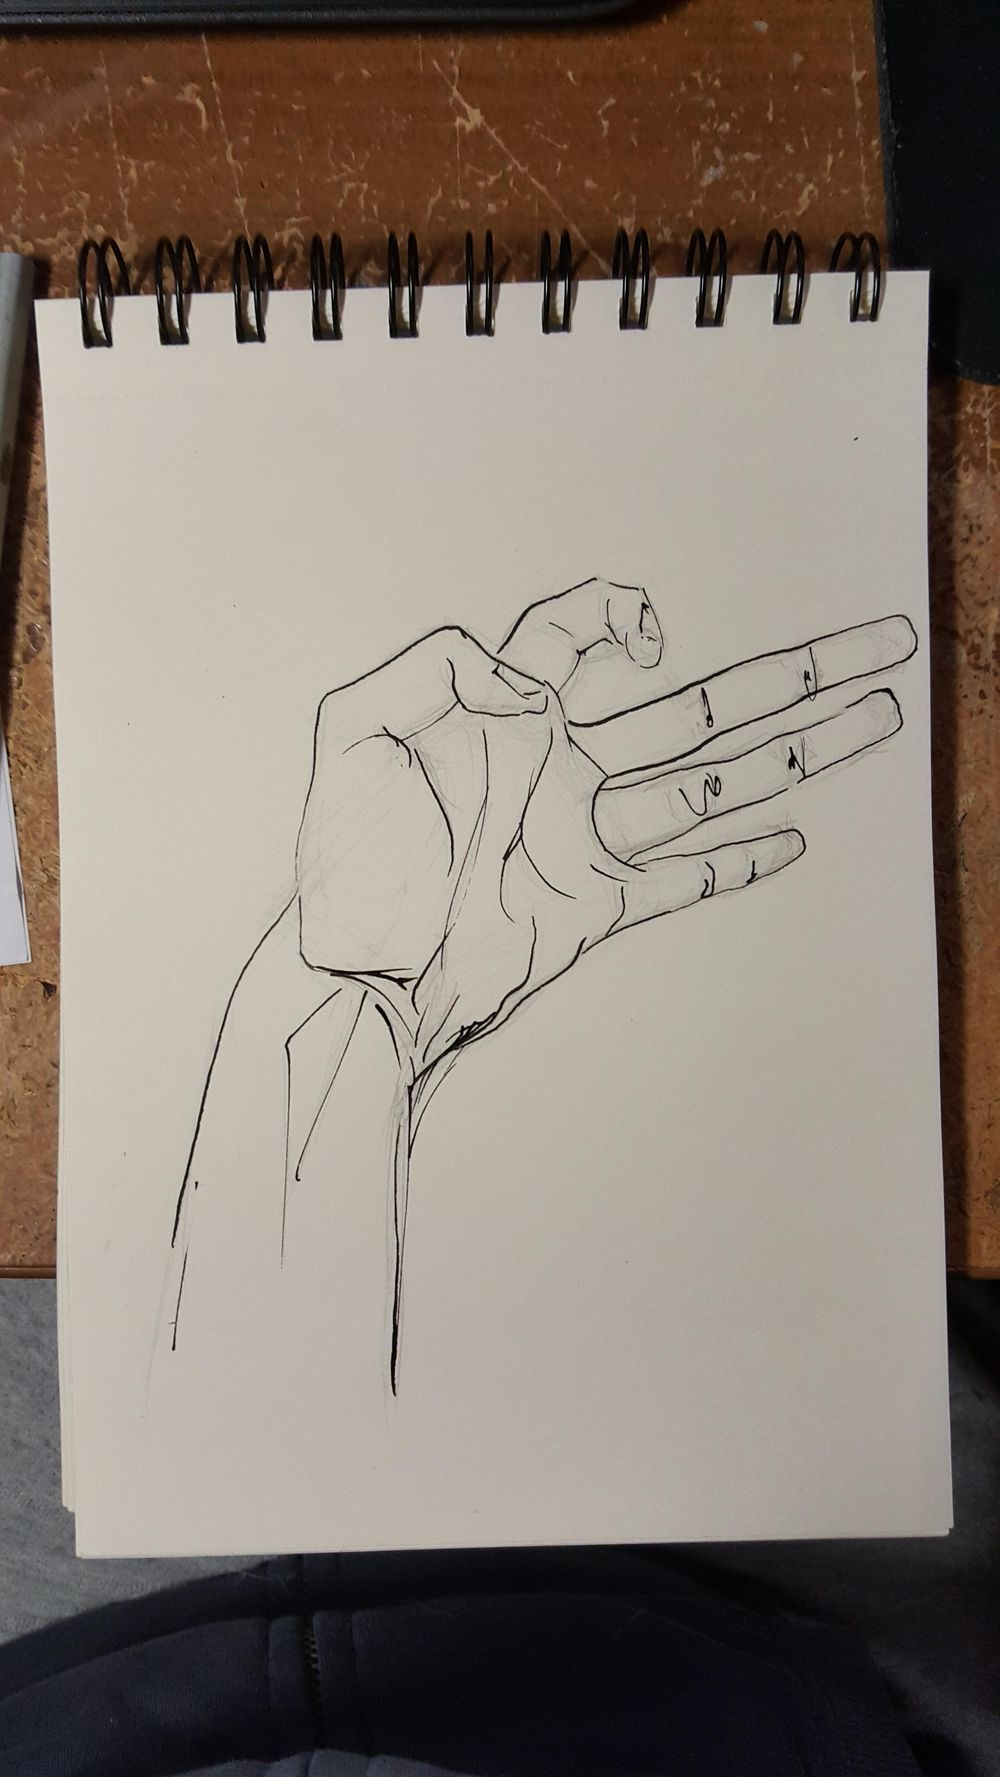 Ink hands - image 3 - student project